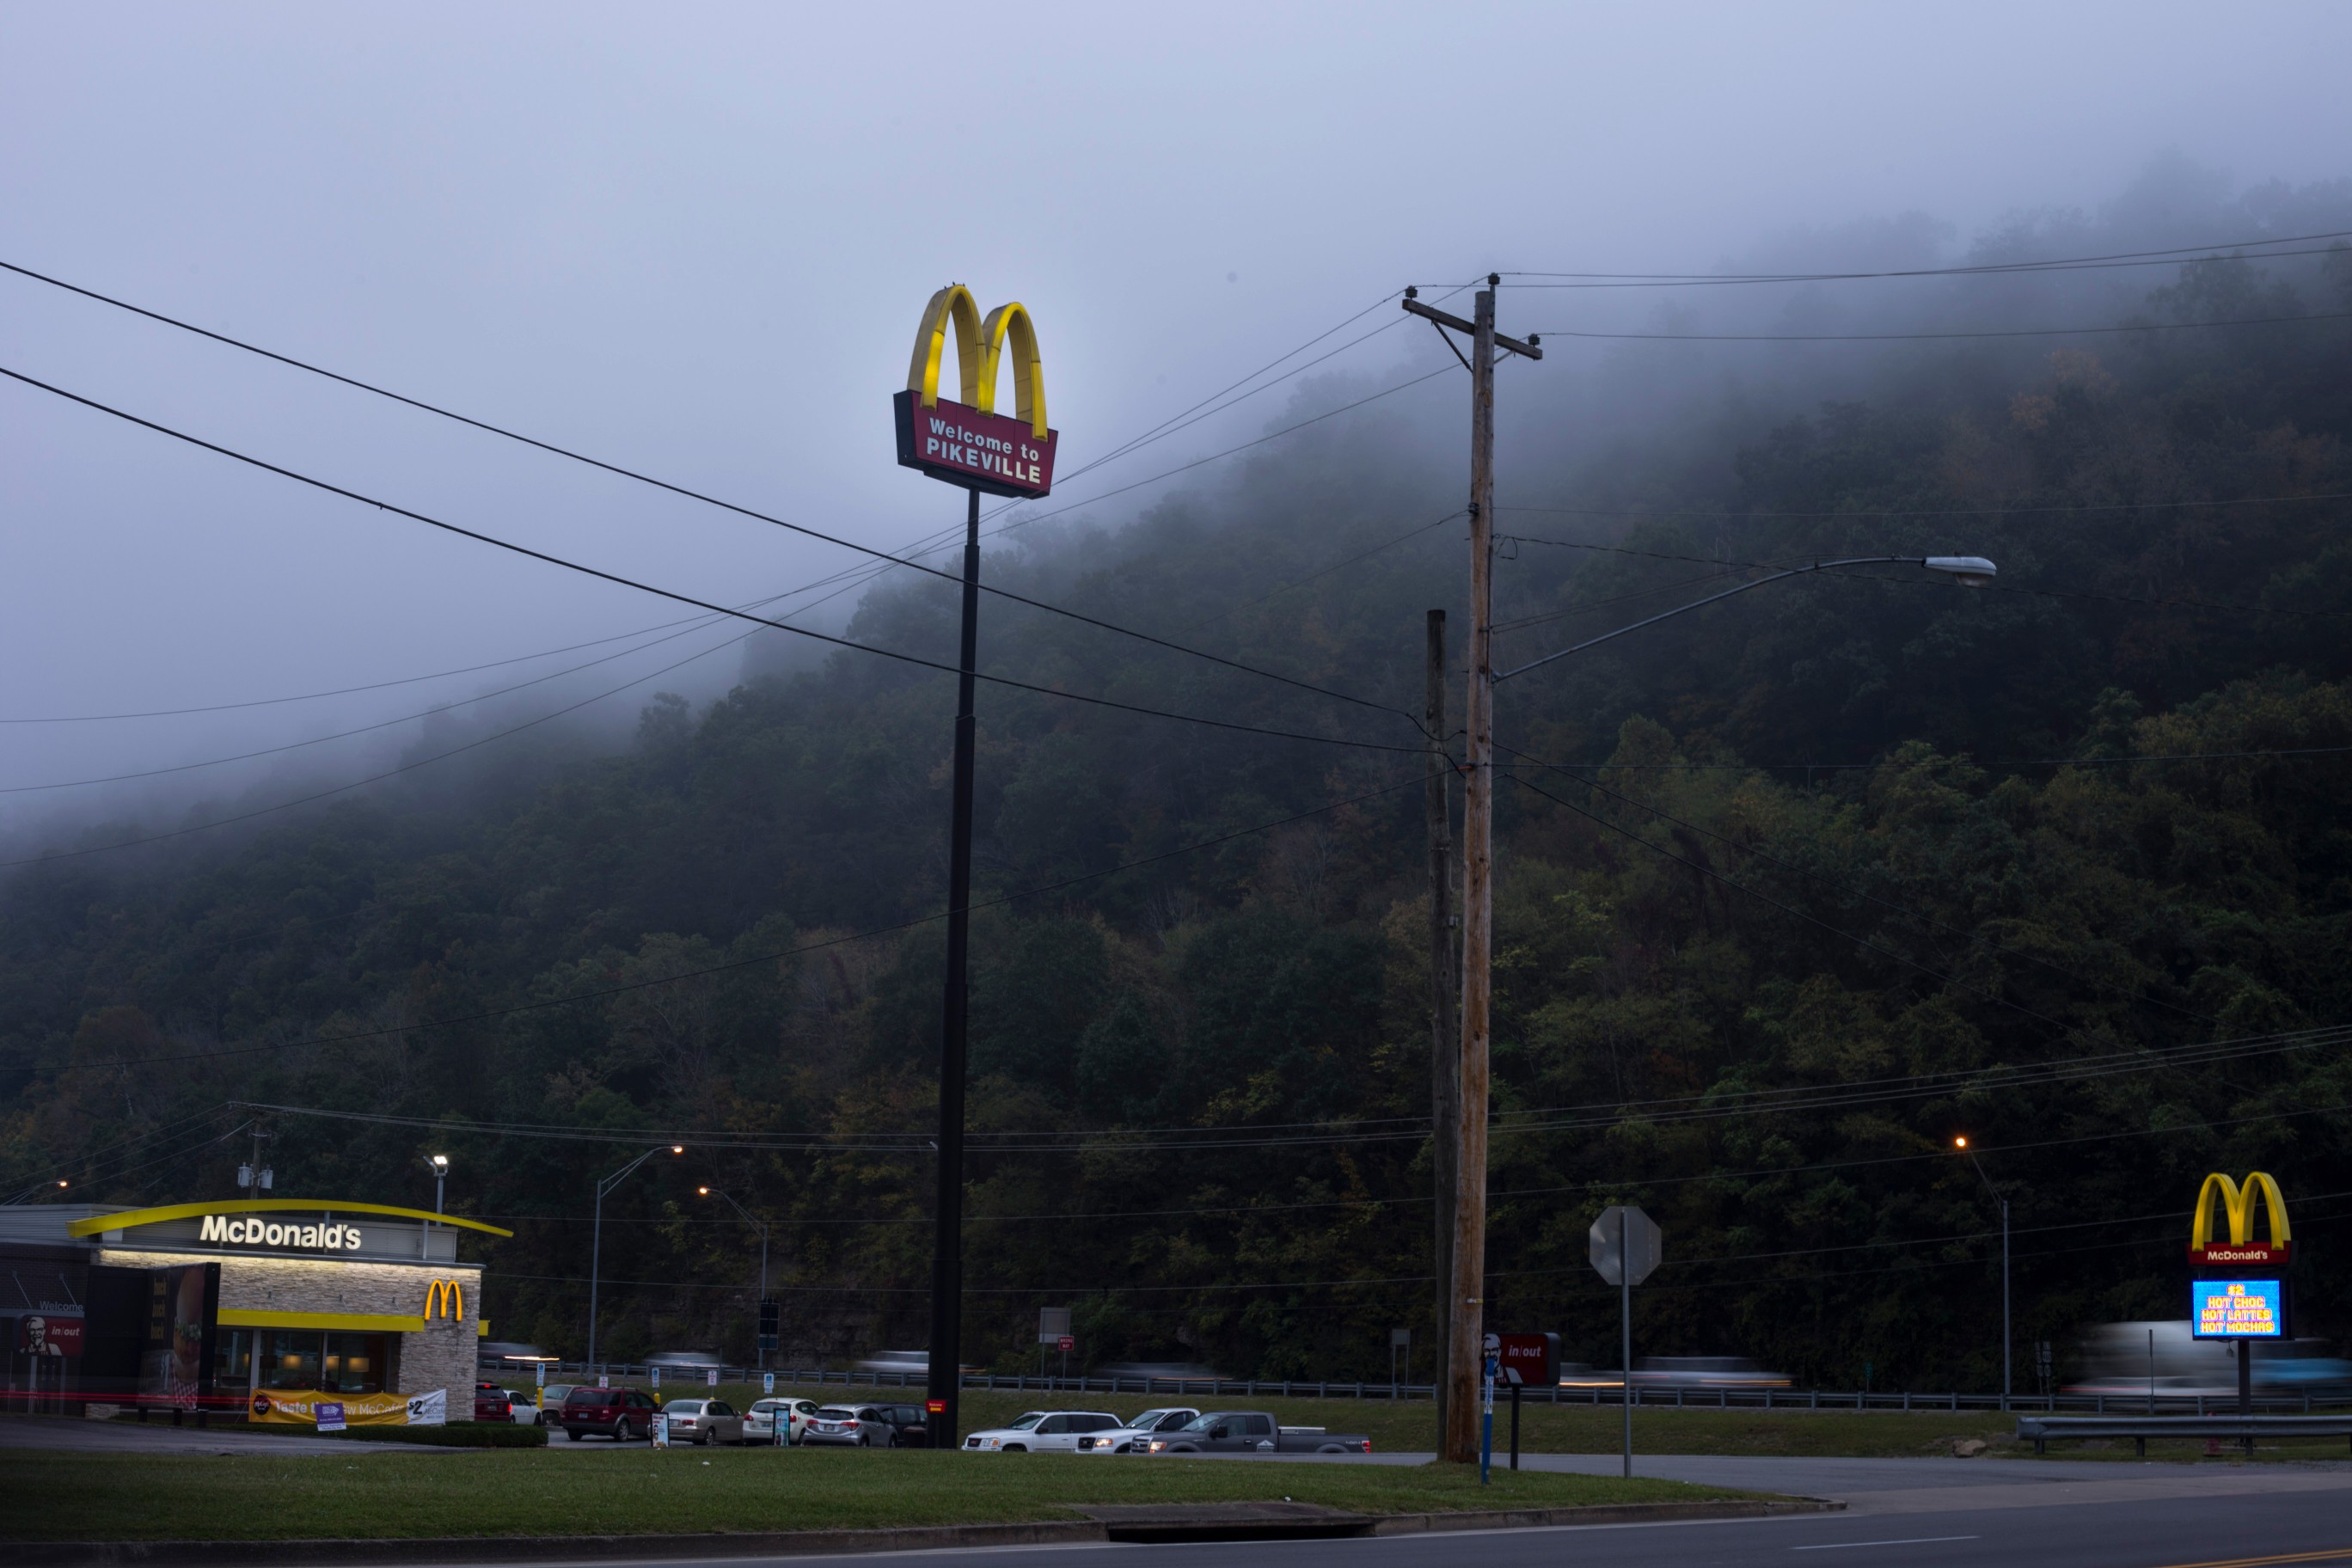 A McDonald's is seen greeting visitors to Pikeville, Ky., on Friday, September 22, 2017. (Photo by Brittany Greeson/GroundTruth)